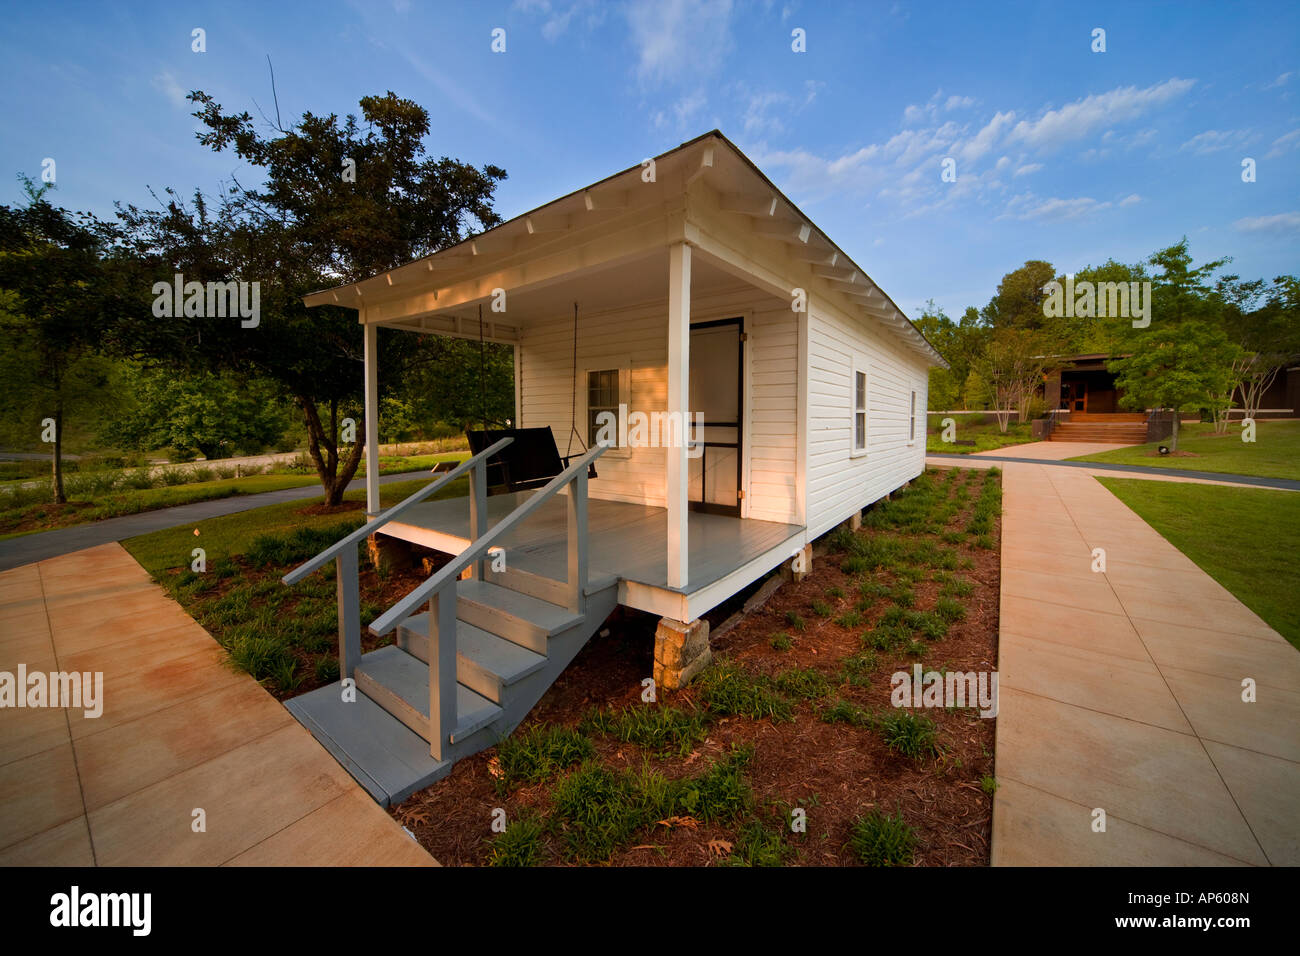 Tupelo Mississippi: The house where Elvis Presley was born. - Stock Image